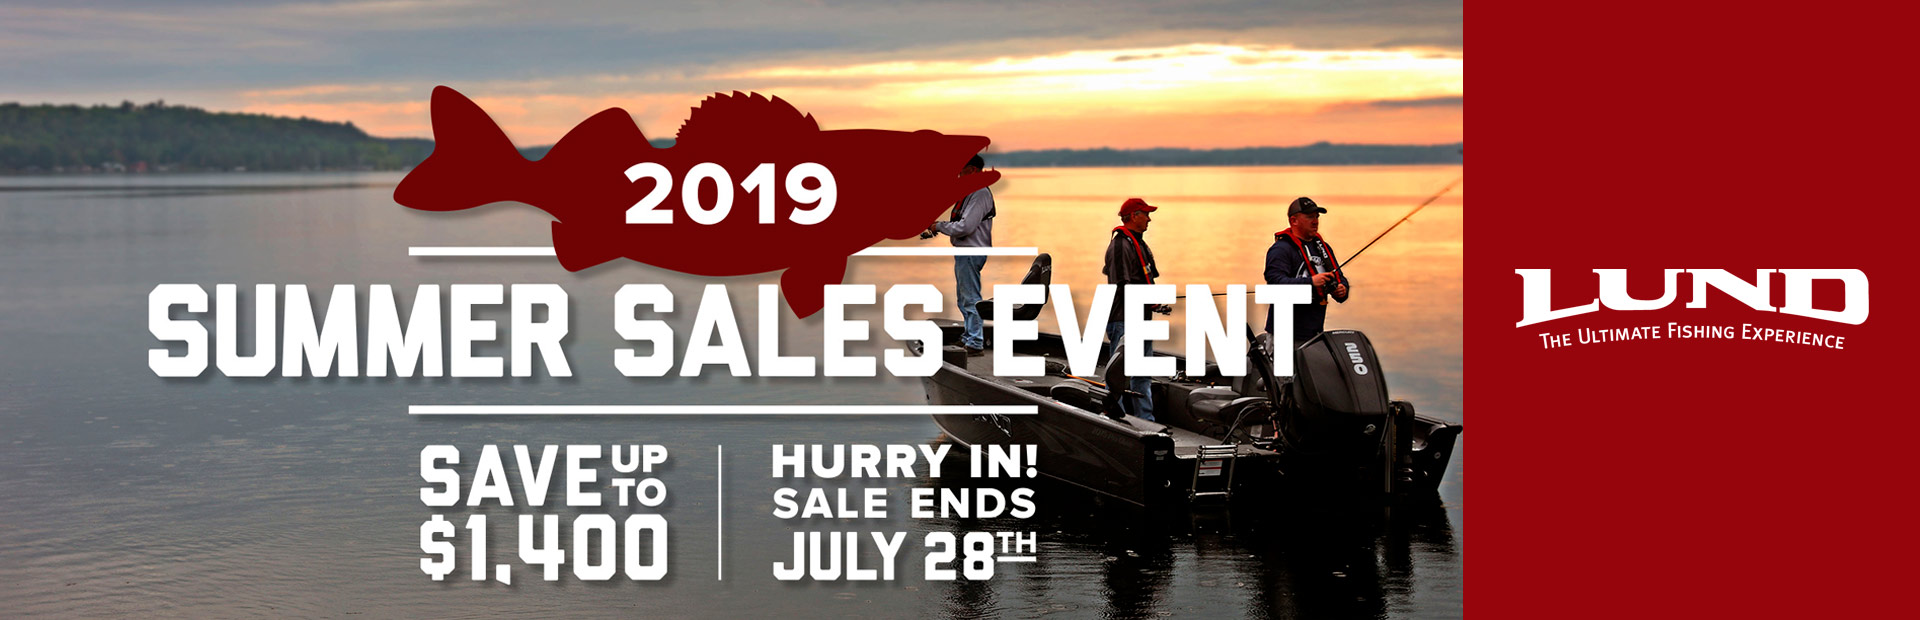 Lund: 2019 Summer Sales Event